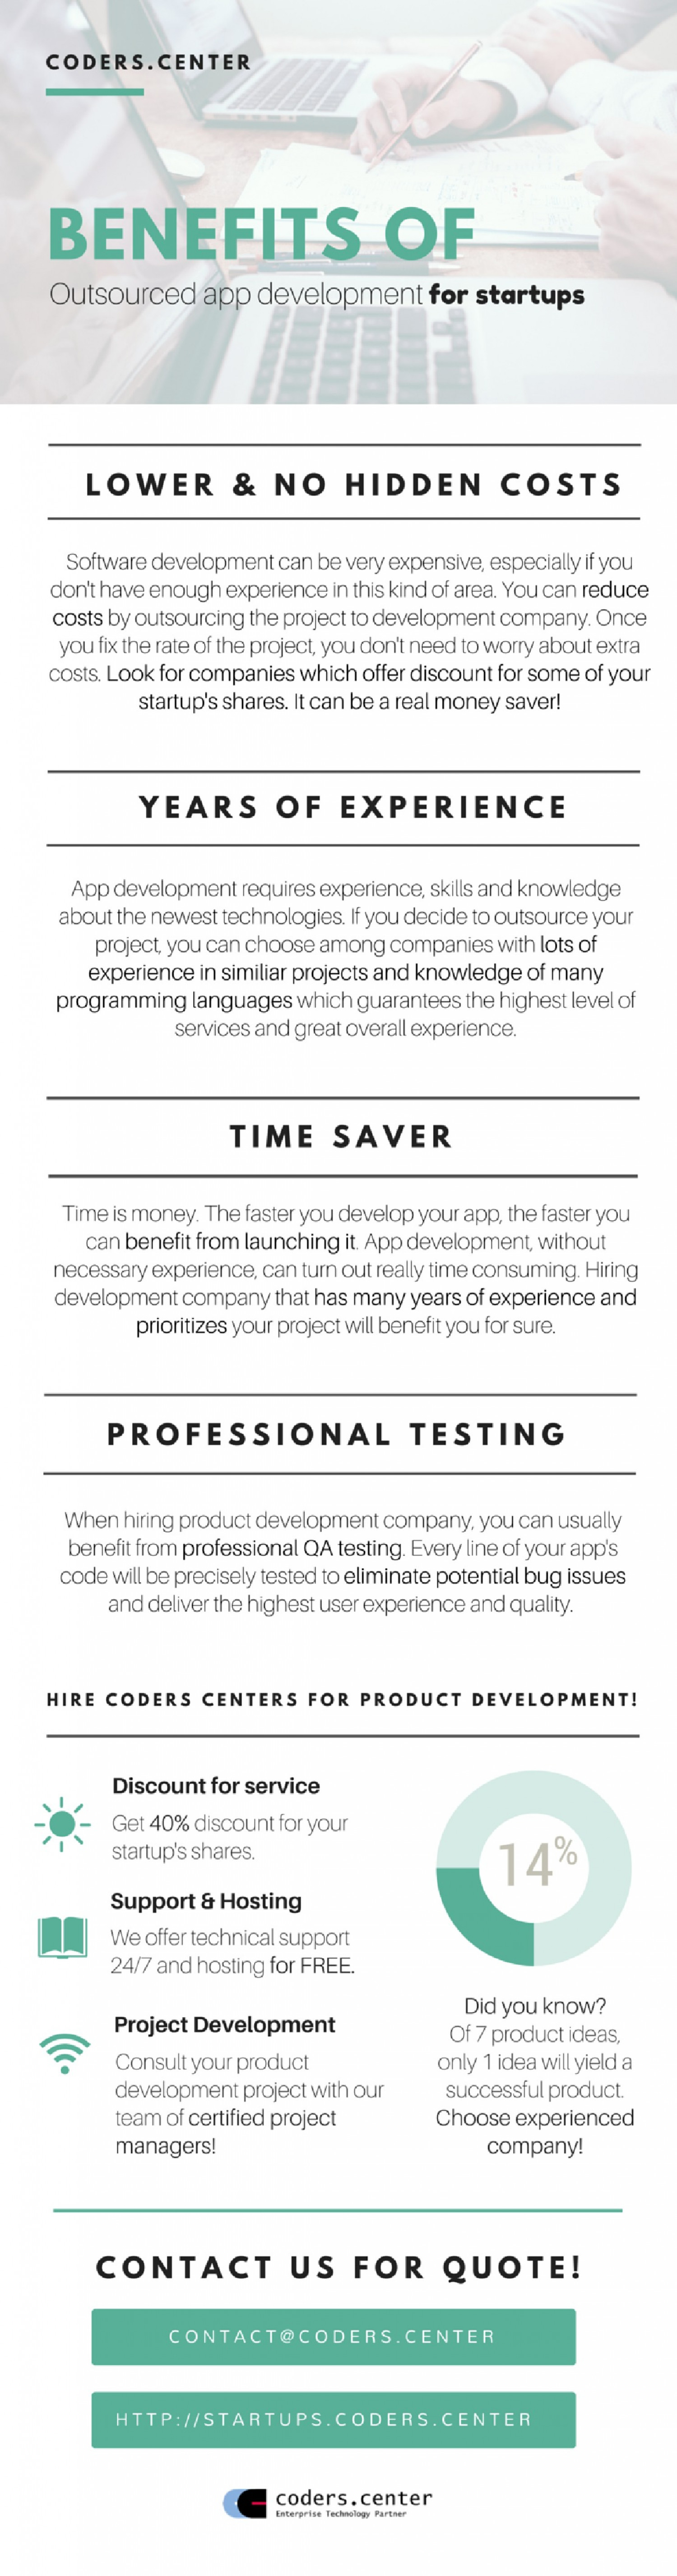 Benefits of Outsourced App Development for Startups Infographic